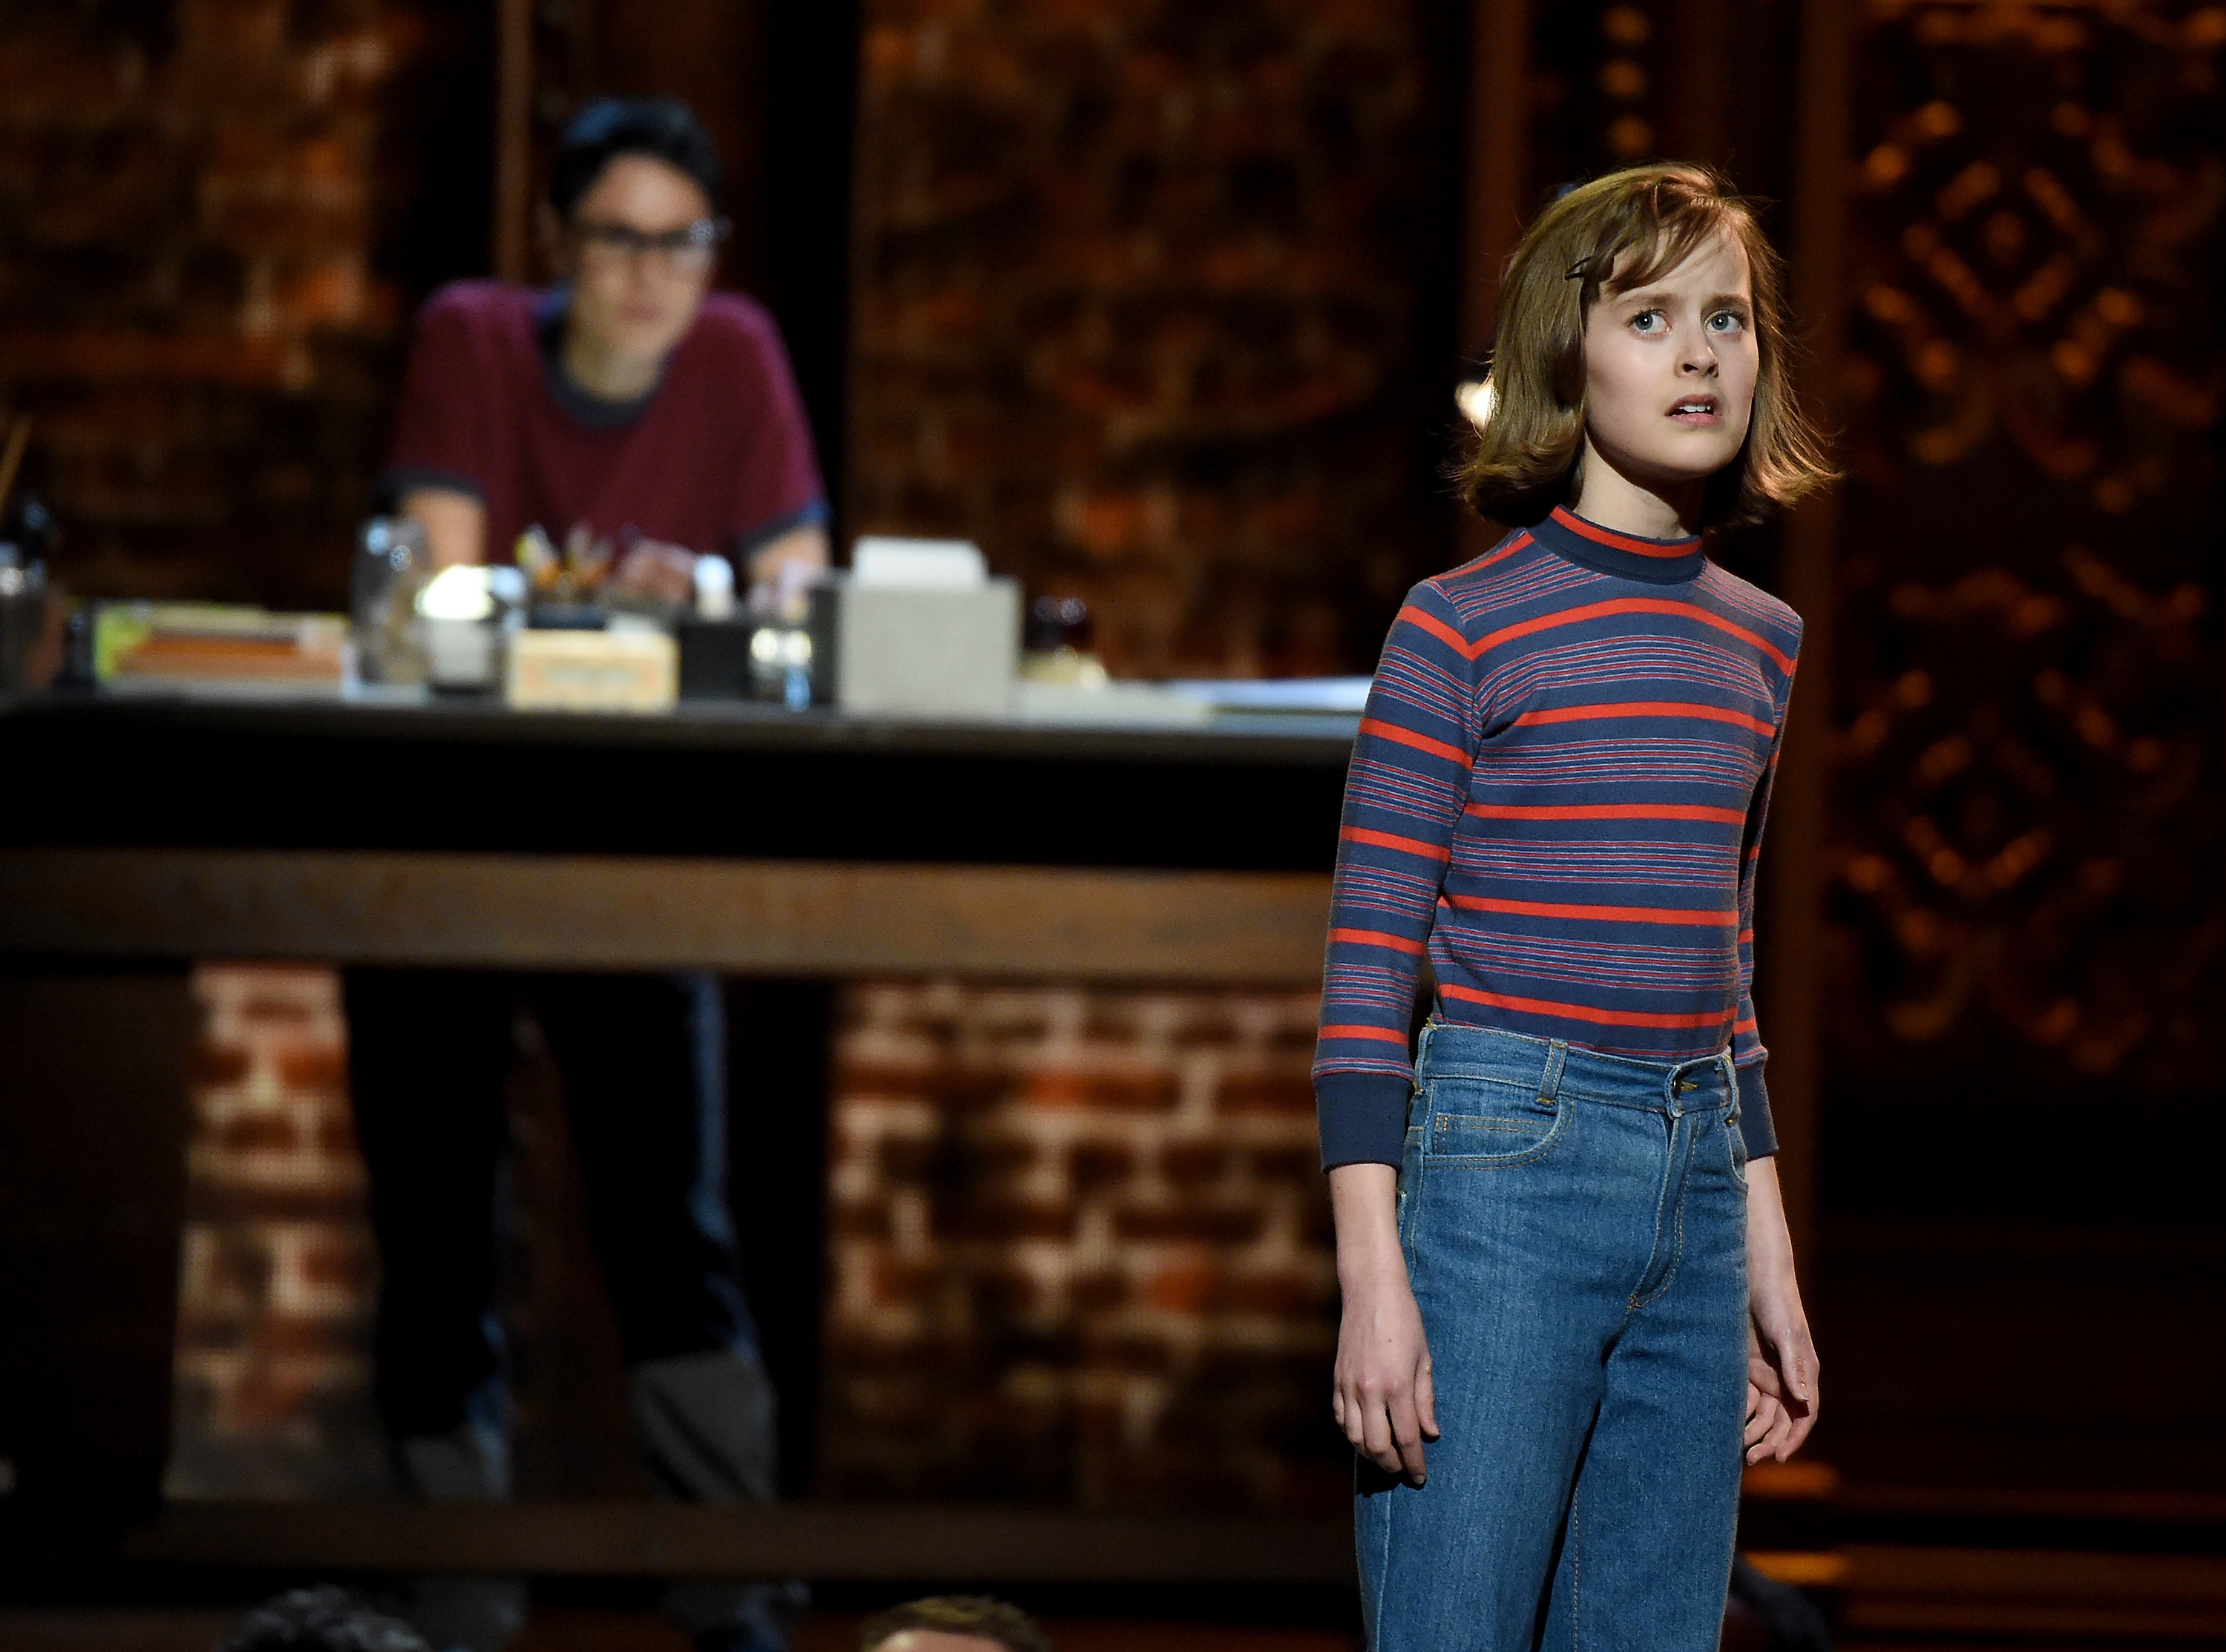 Fun Home' Wins Best Musical At The Tonys, So Does This Mean